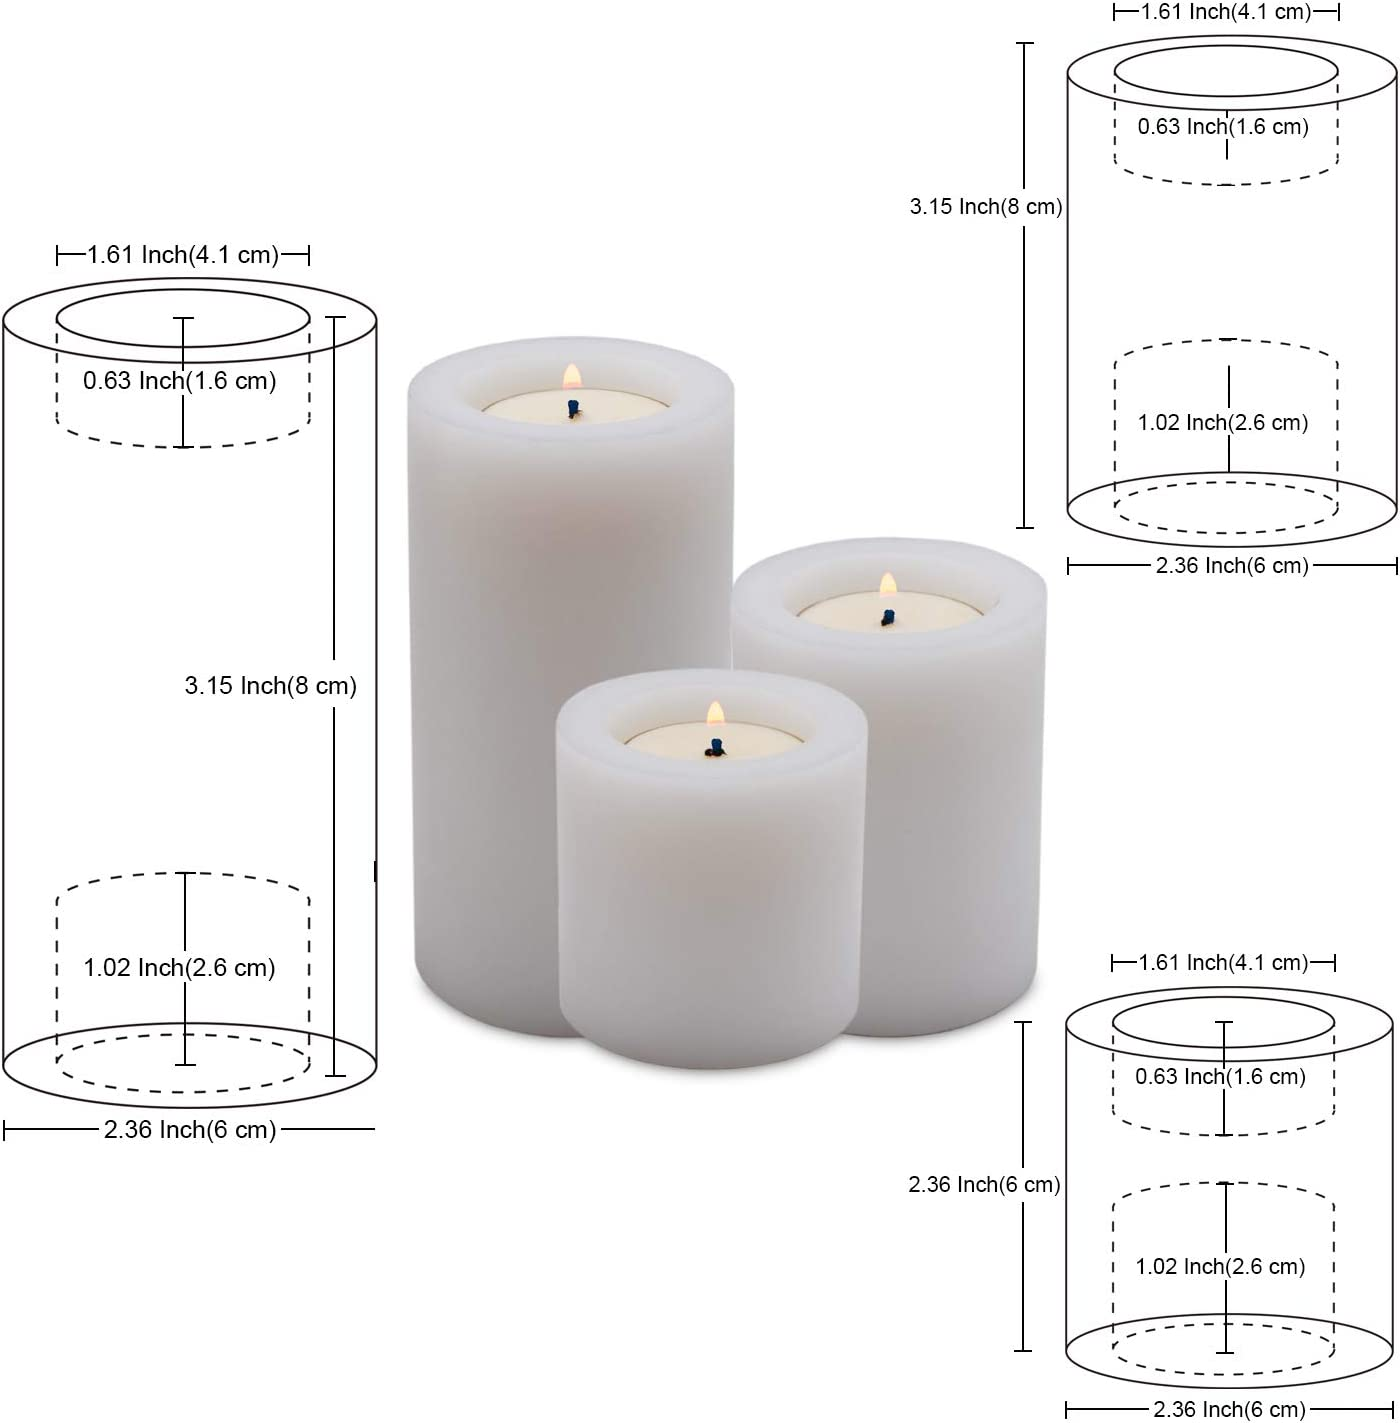 NIGHTKEY White Polyolefin Resin Tealight Candle Holder Party Set of 3 Decorative Tealight Candlestick Holder for Wedding Dinning